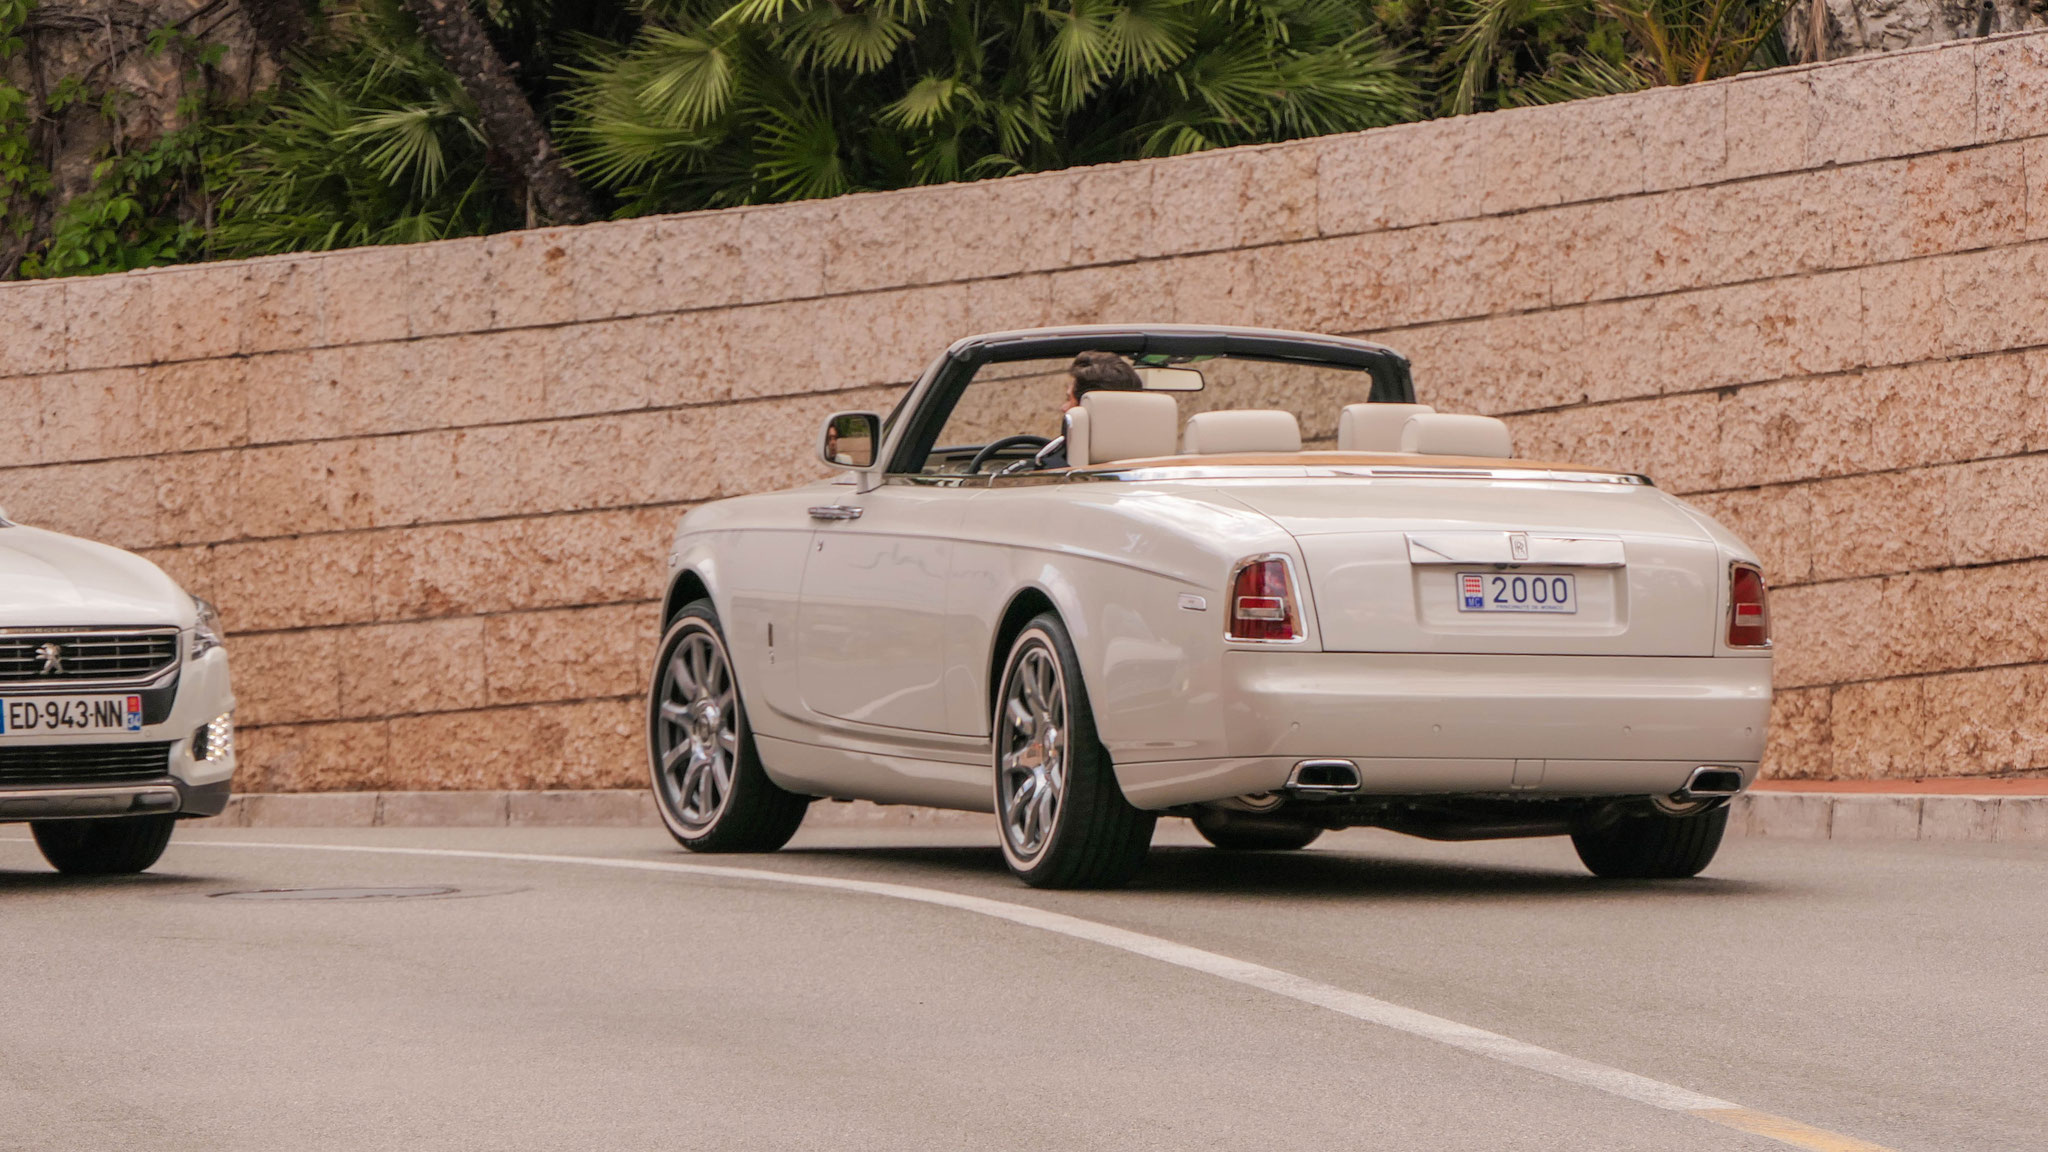 Rolls Royce Drophead - 2000 (MC)